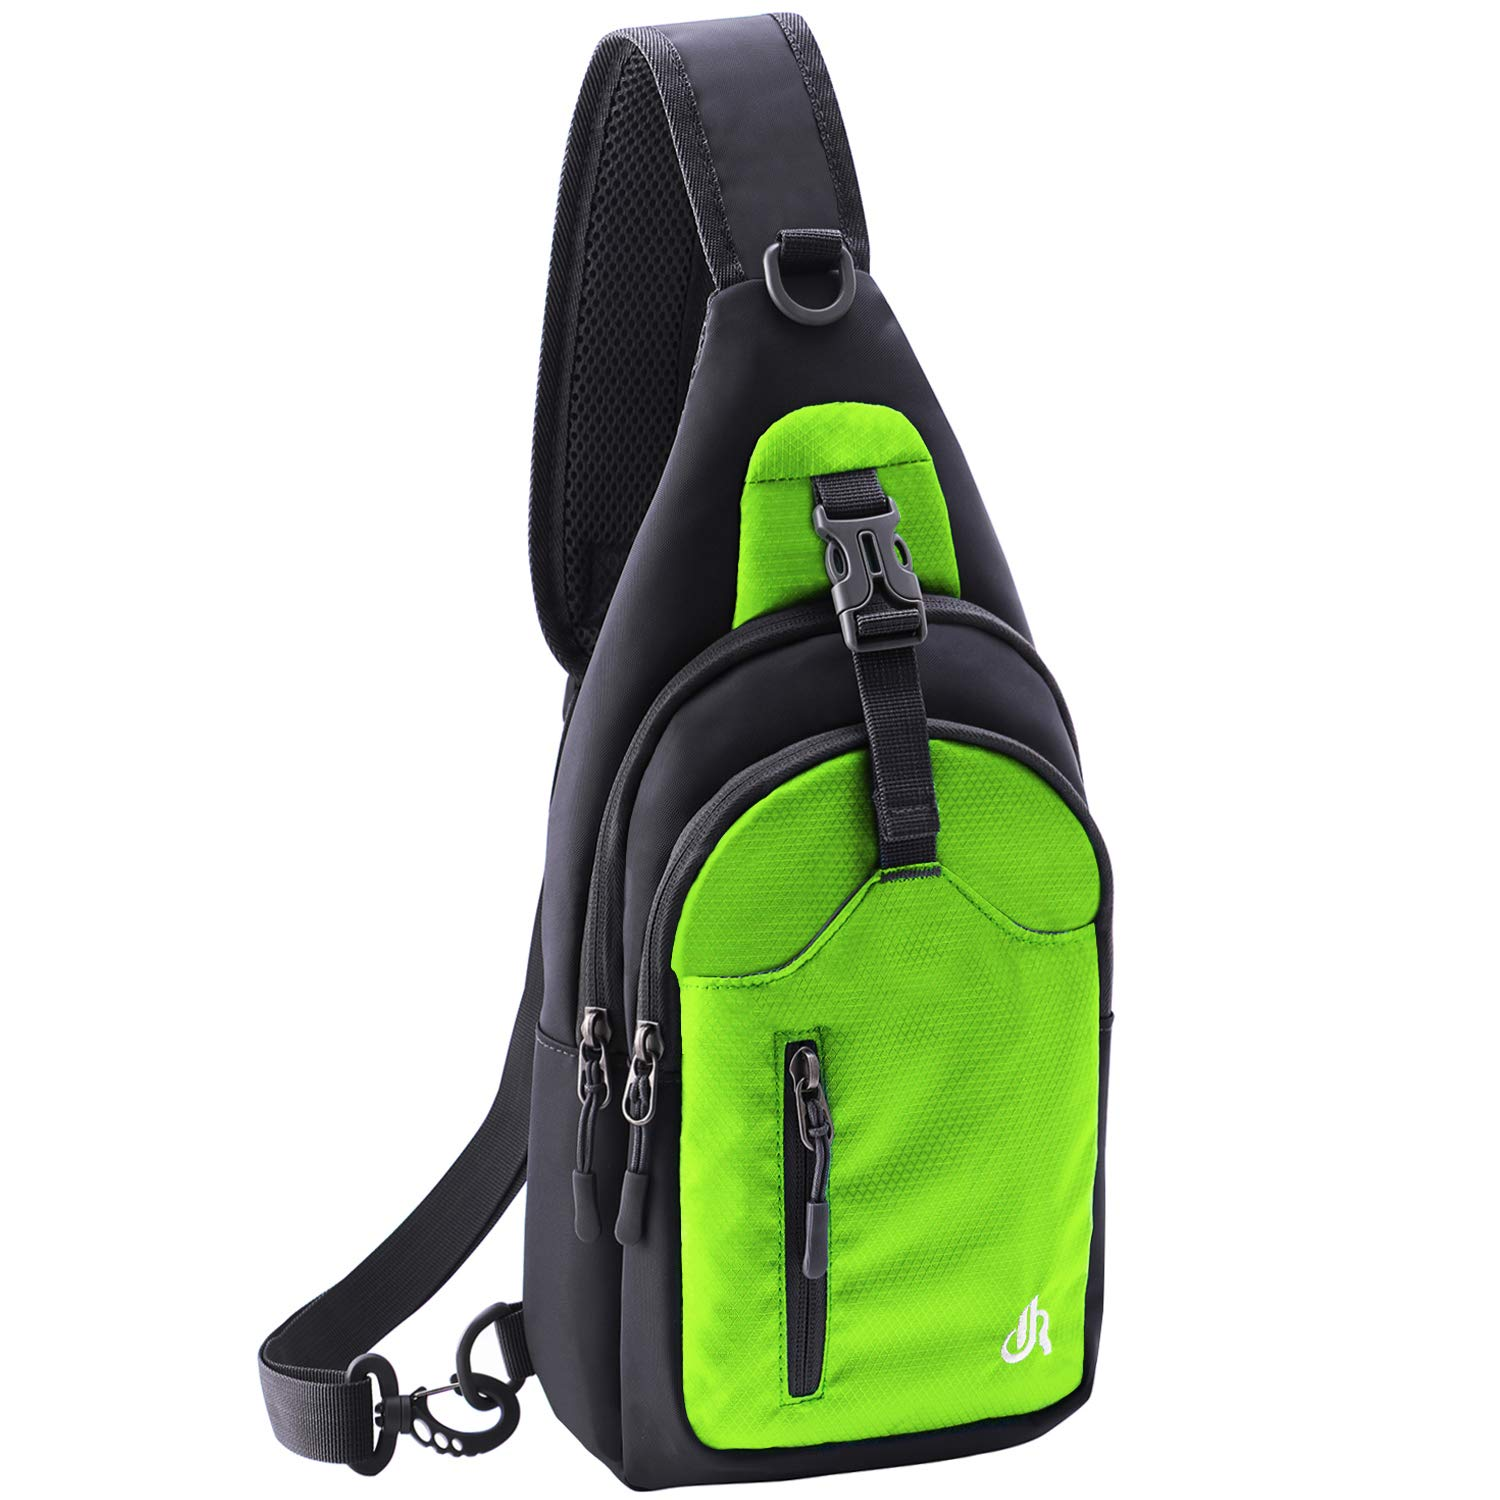 Sturdy sling bag for a great price